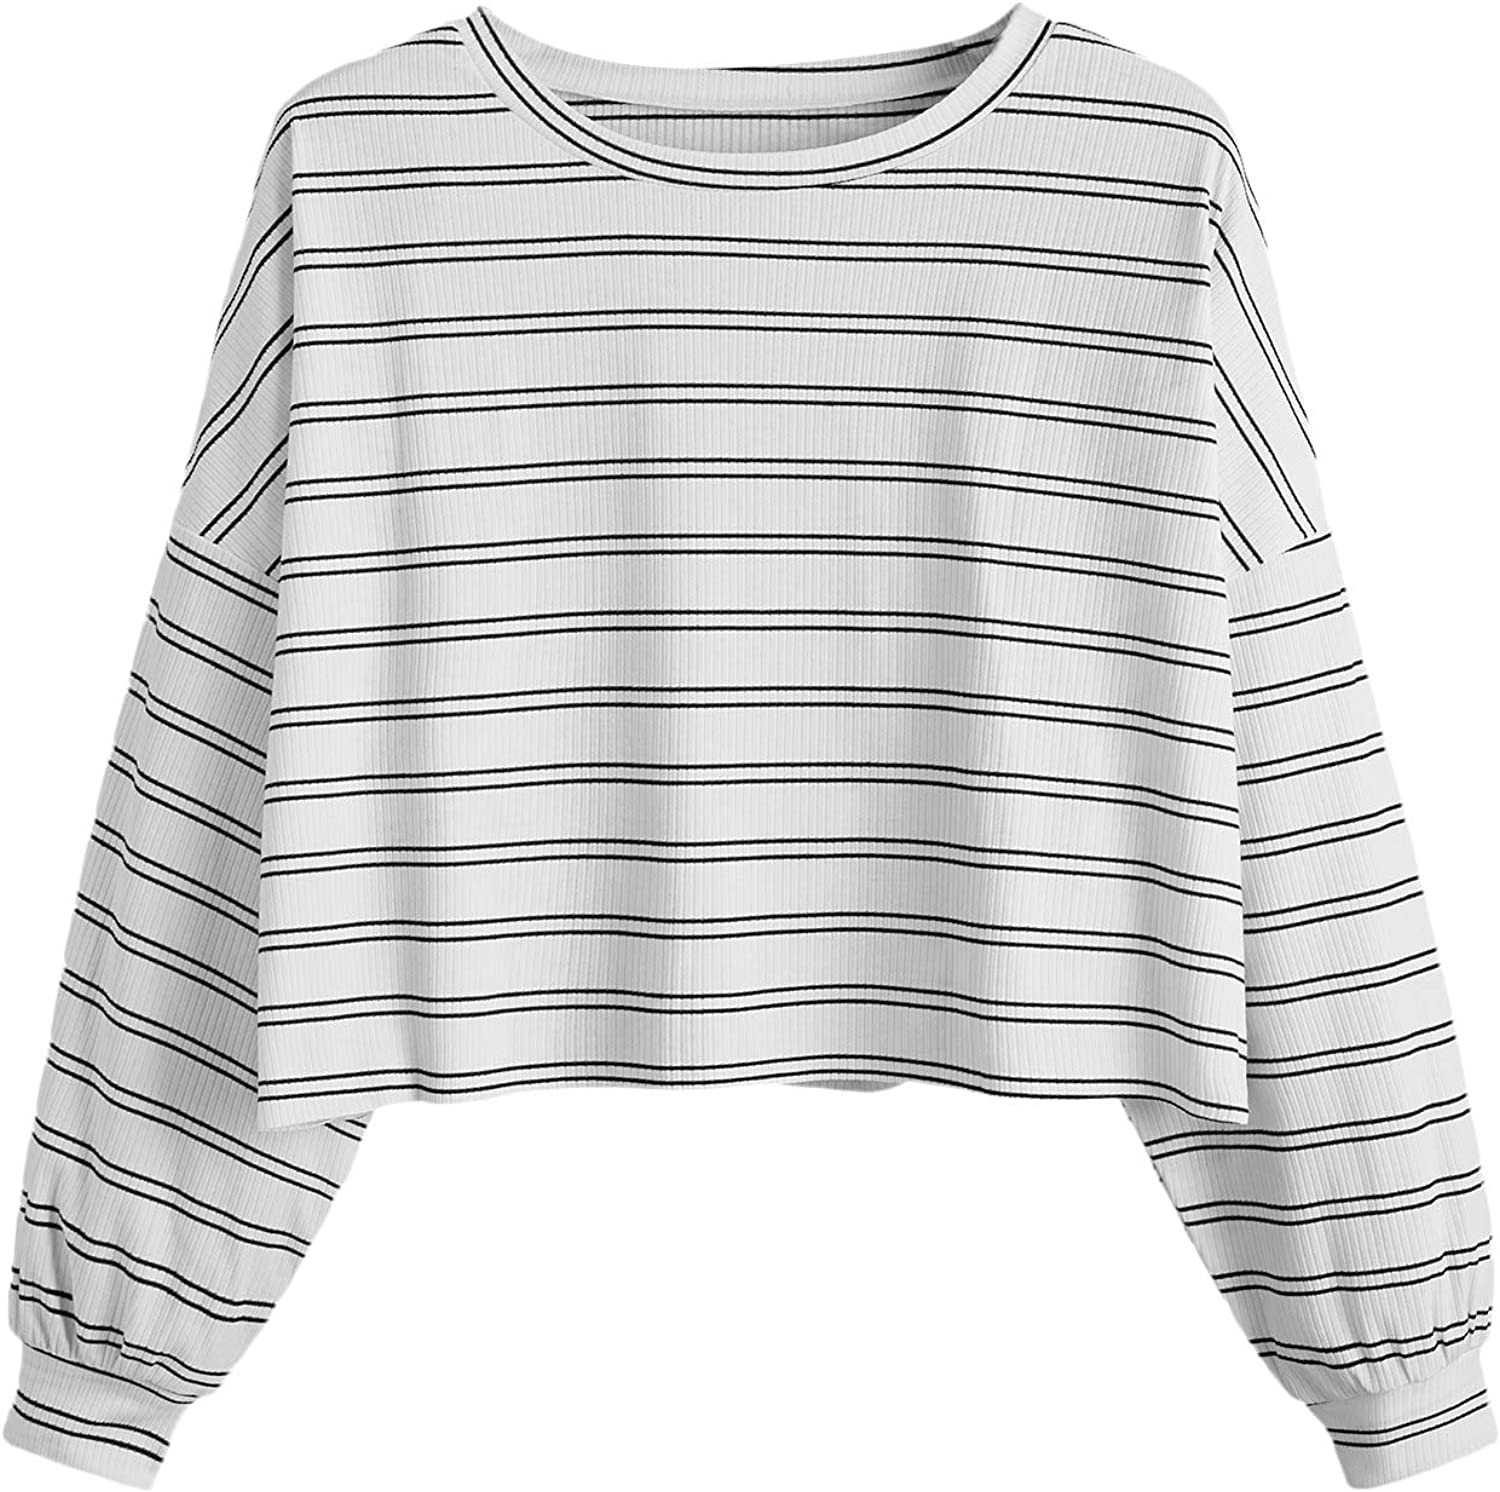 Floerns Women's Plus Size Long Sleeve Striped Oversize Pullovers Crop Top Tee